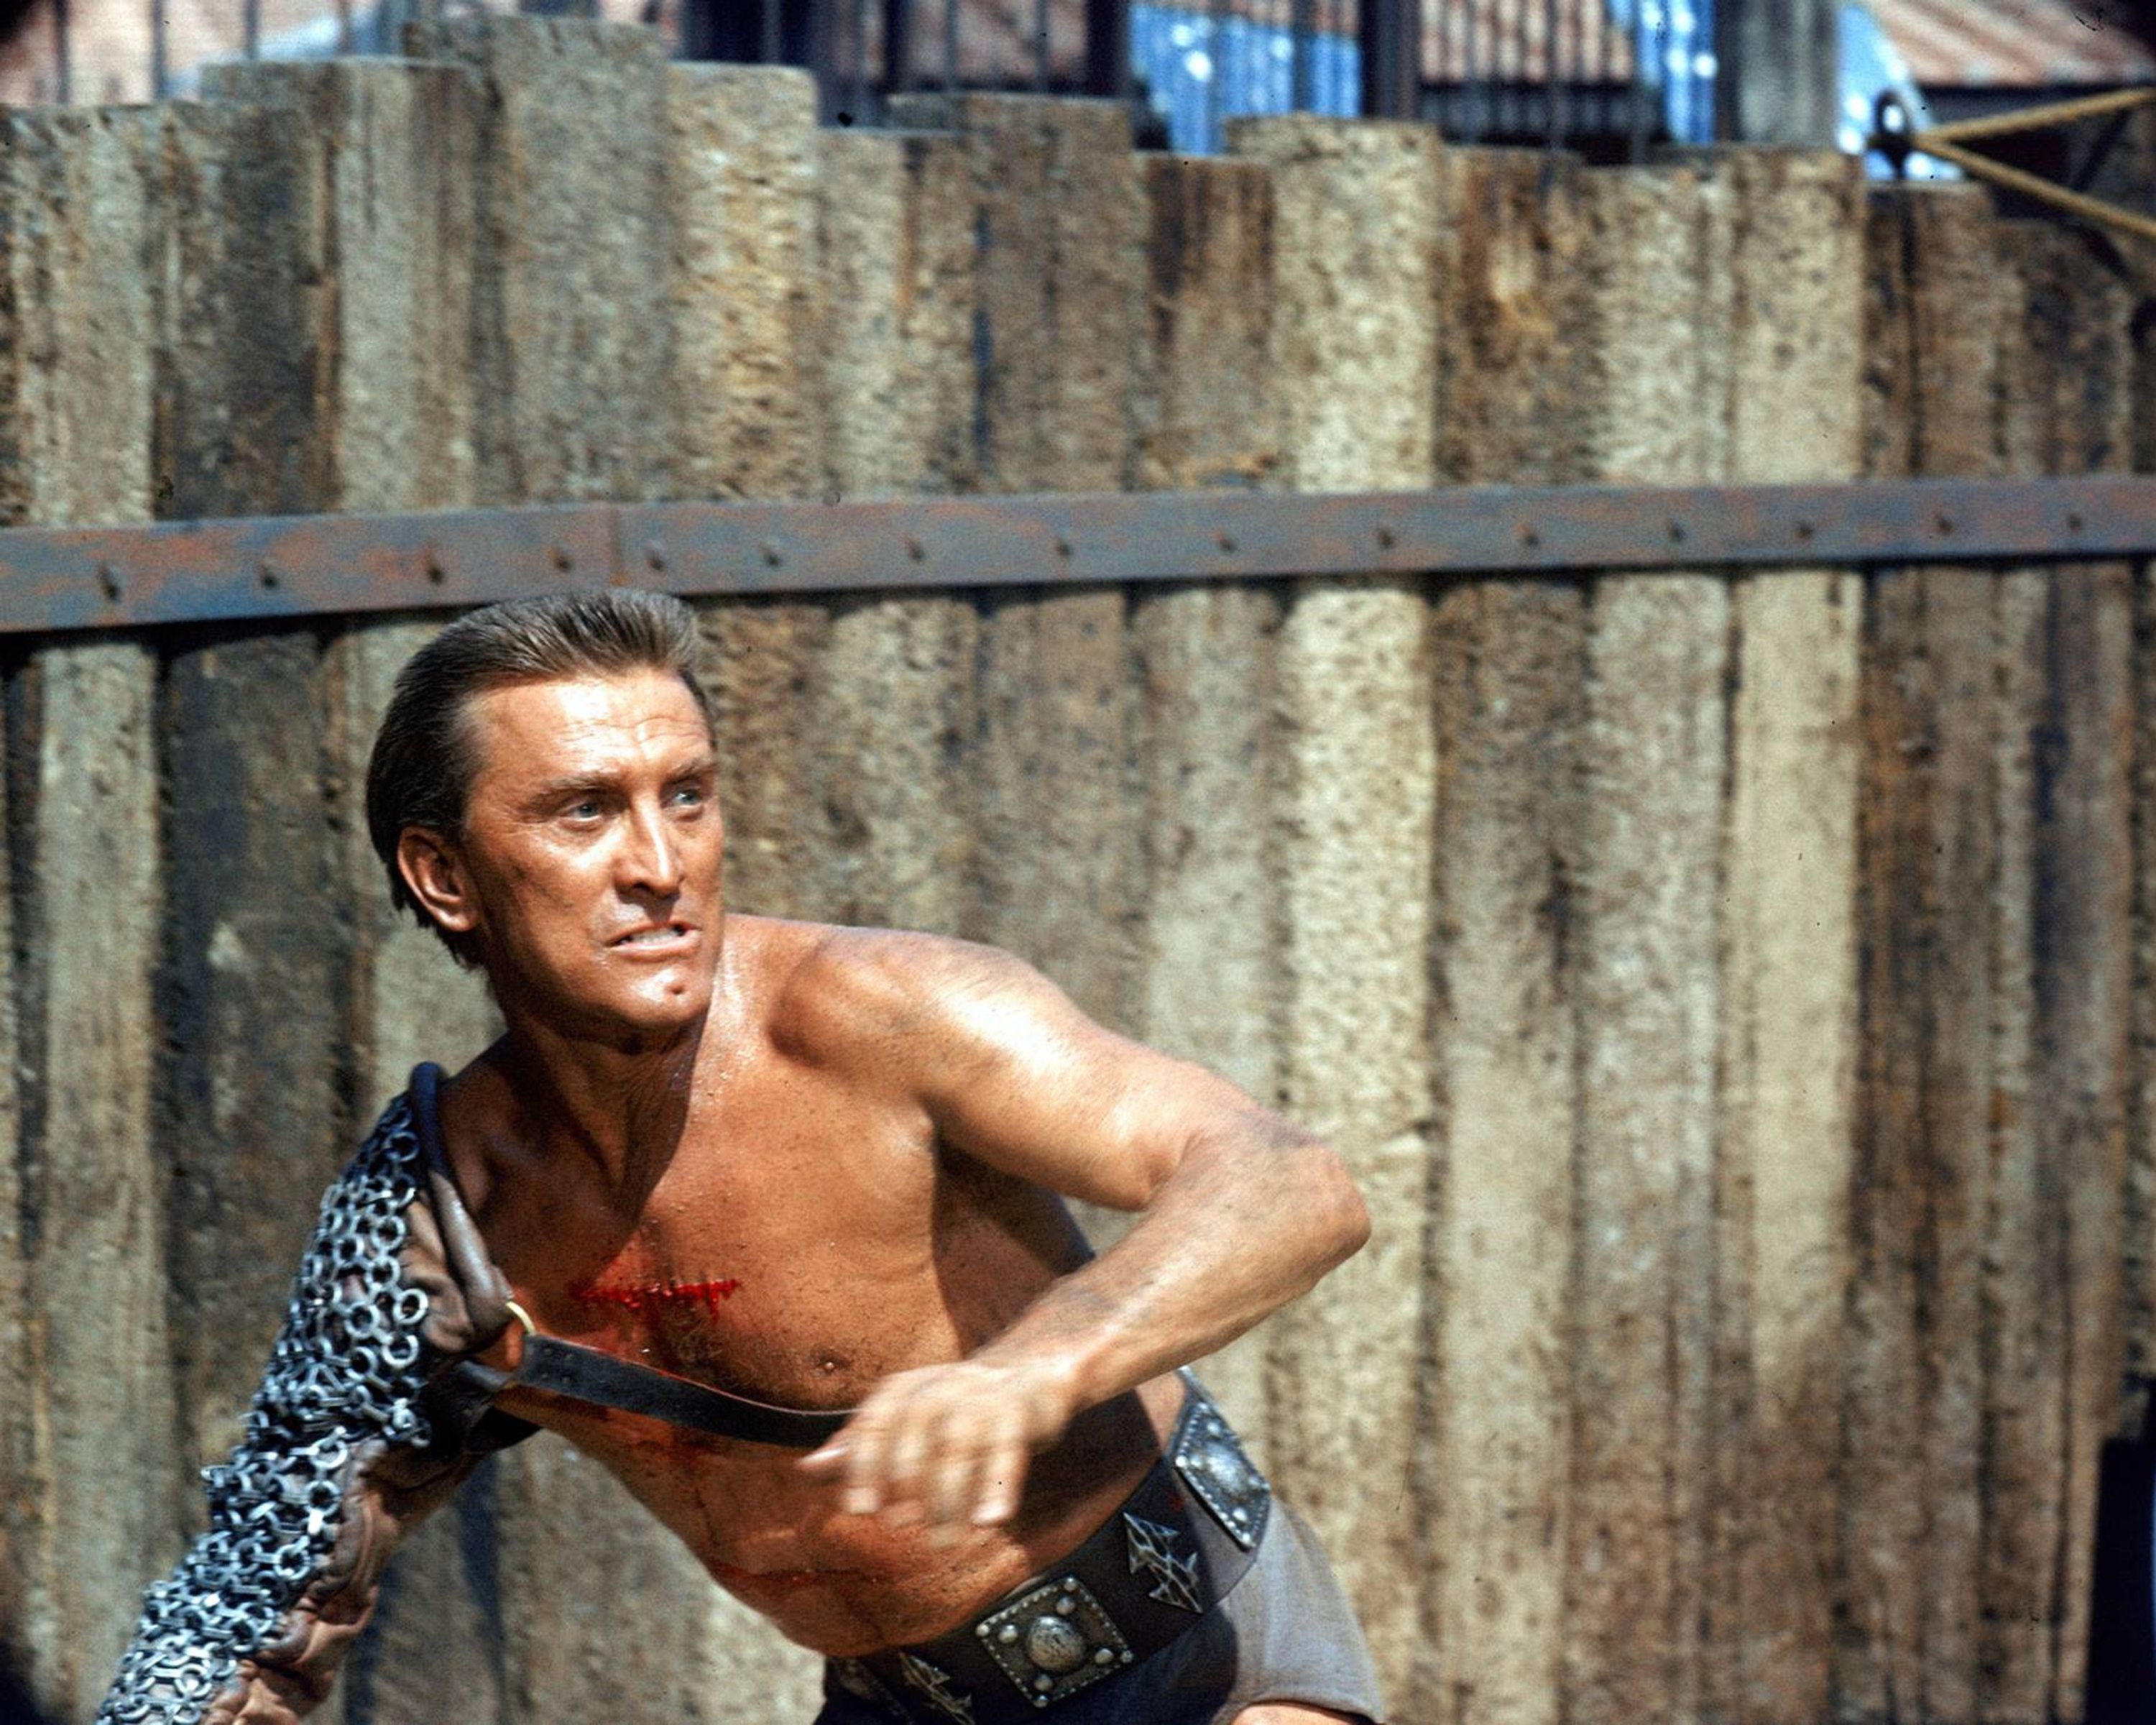 Kirk Douglas, US actor, wearing chain mail protection on his right arm in a publicity still issued for the film, 'Spartacus', 1960. The historical drama, directed by Stanley Kubrick (1928-1999). starred Douglas as  'Spartacus', the leader of a Roman slave revolt. (Photo by Silver Screen Collection/Hulton Archive/Getty Images)